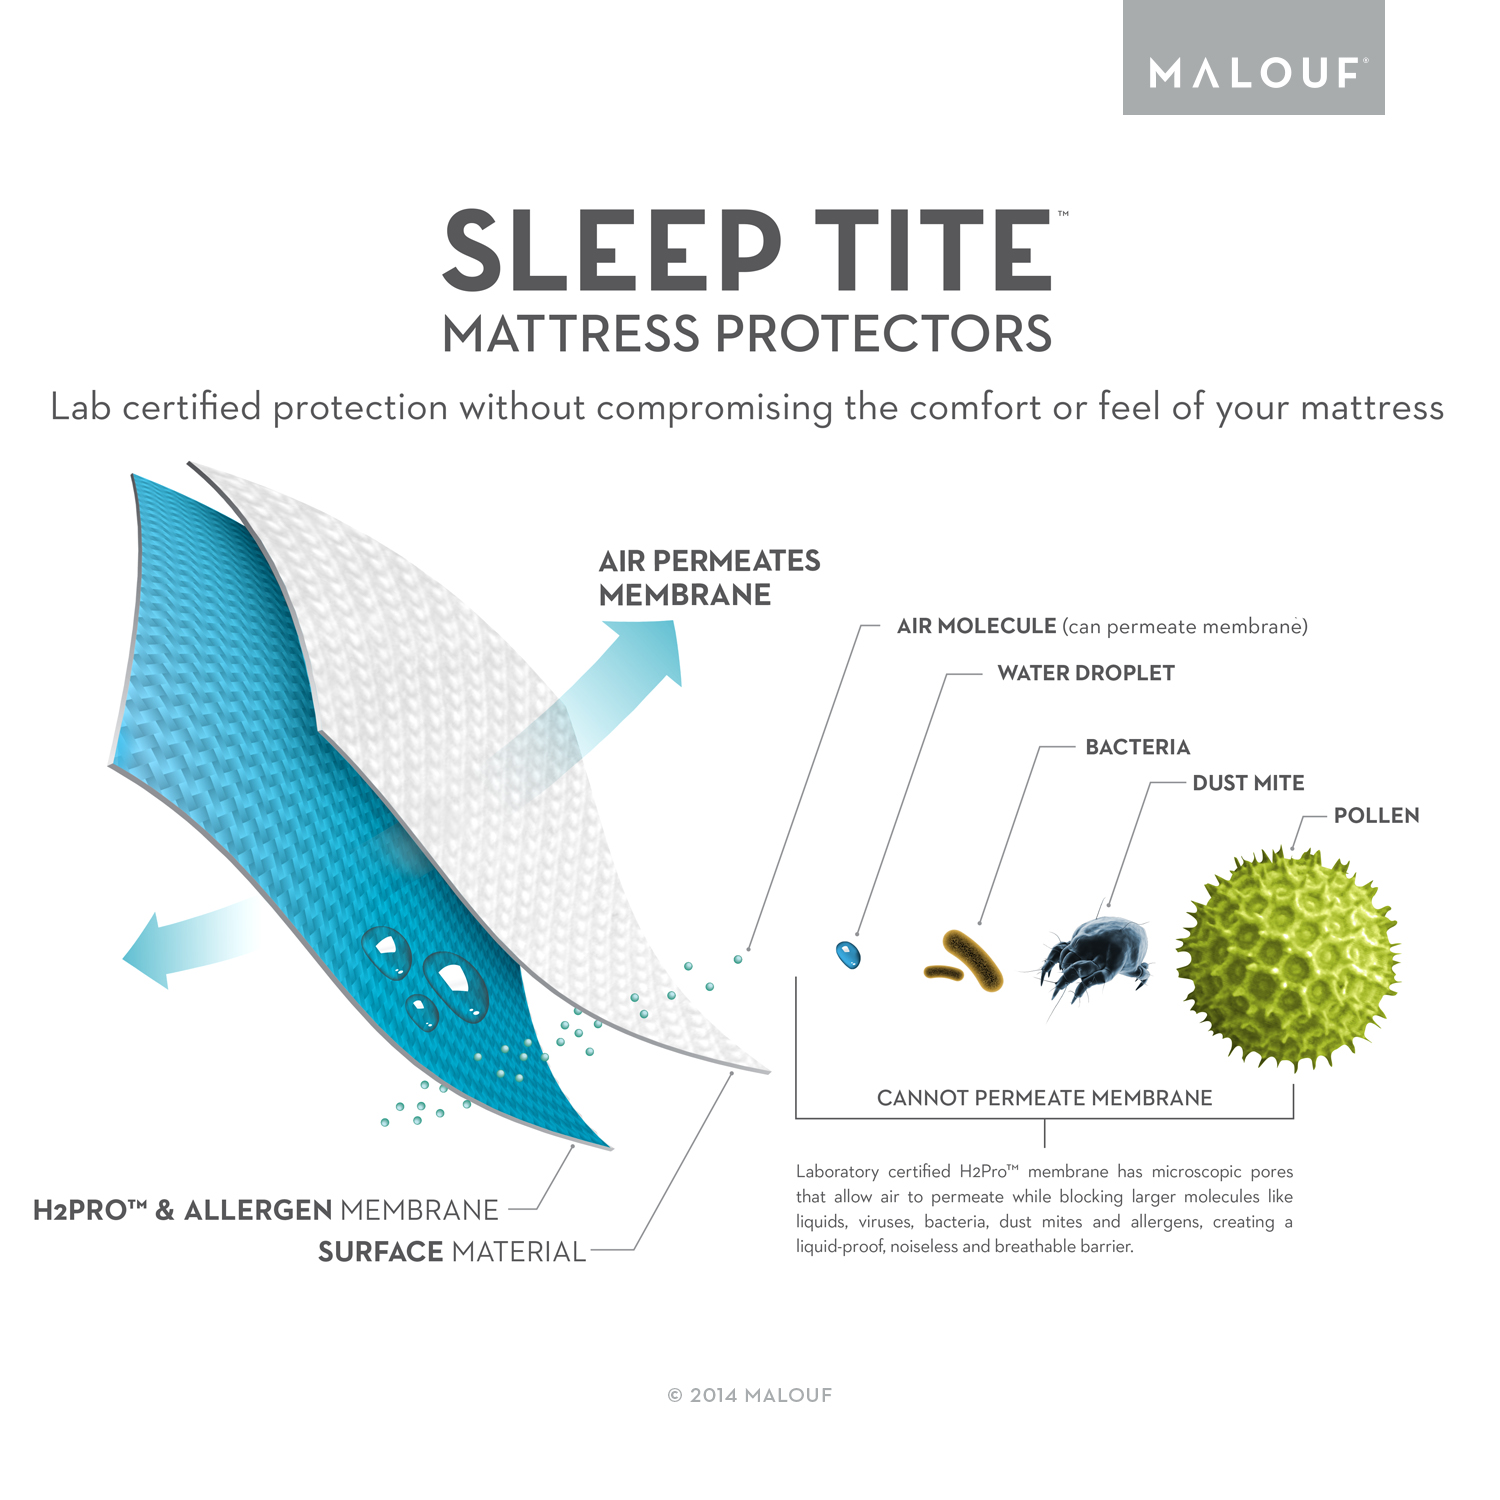 Malouf Sleep Tite Mattress Protector Sleep Tite Pr1me Waterproof Fitted Mattress Protector Vinyl Free